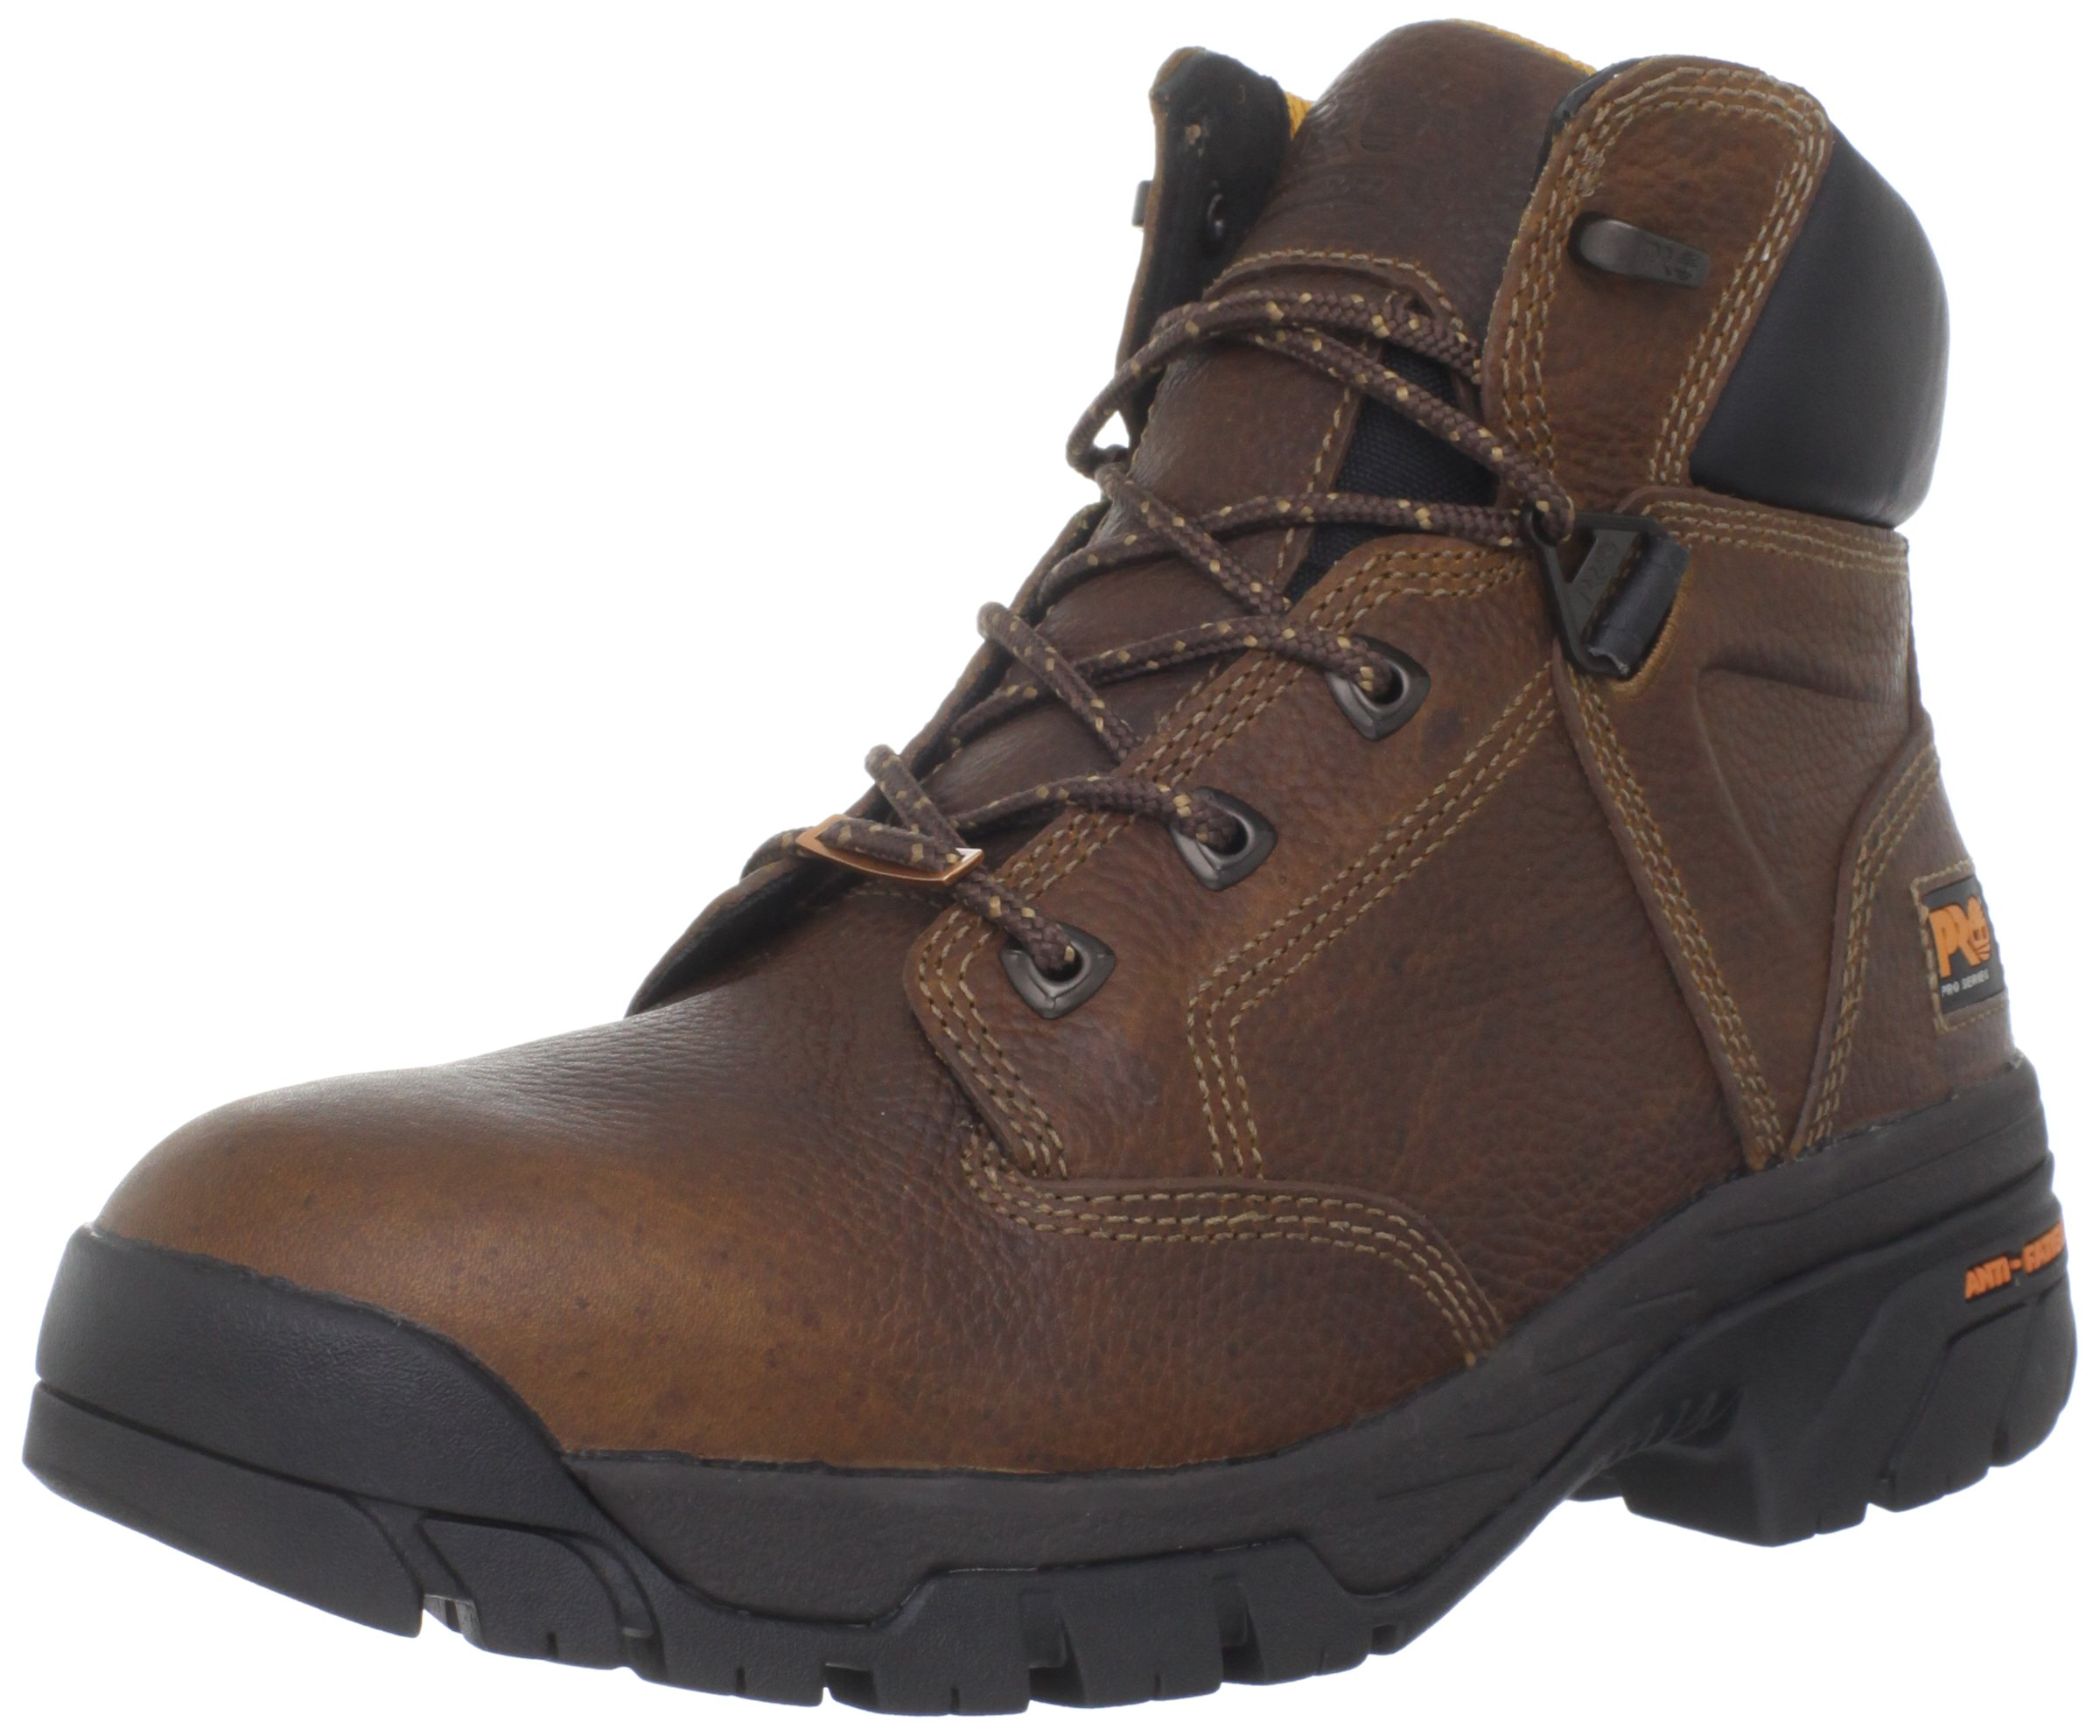 Timberland PRO Men's Helix 6 Inches Soft Toe Work Boot,Brown,10.5 M US